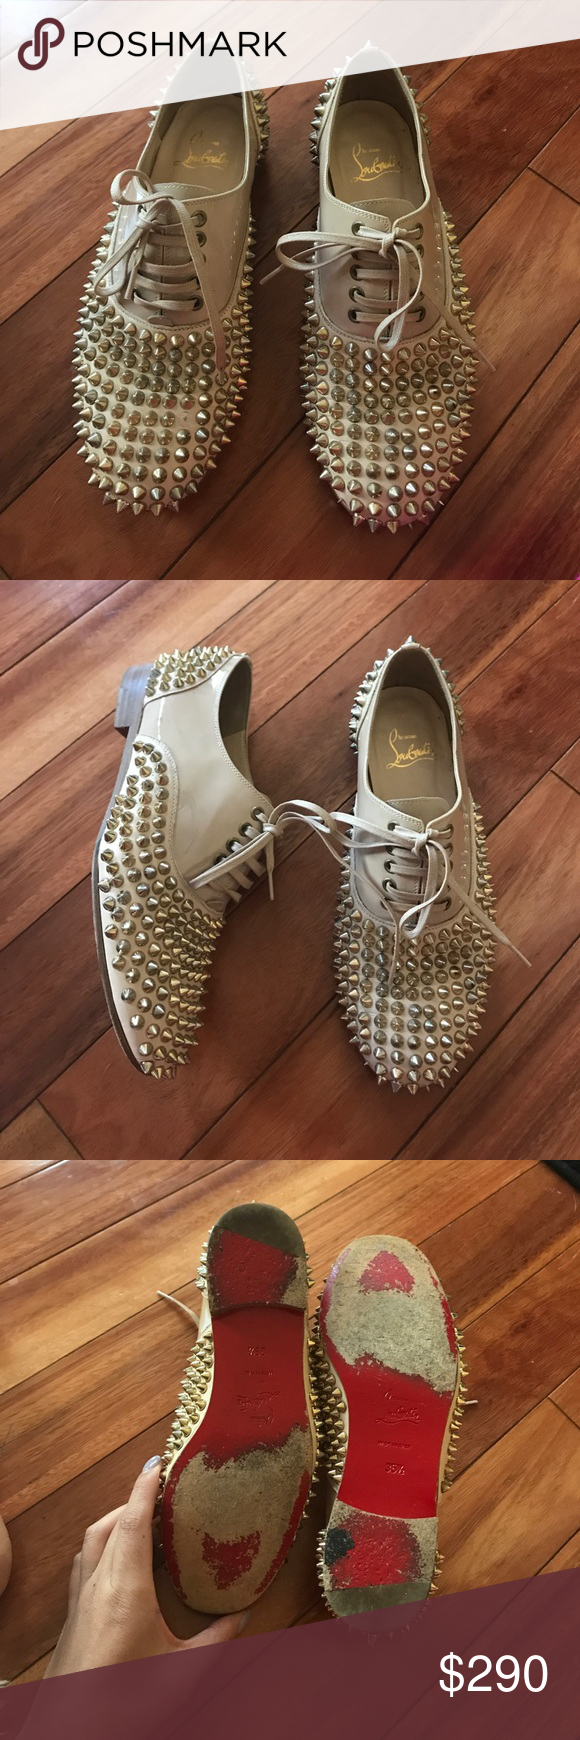 47a9ee01bf48 Christian Louboutin Freddy Studded Oxford Loafers Still in great condition  100% authentic loafers by Christian